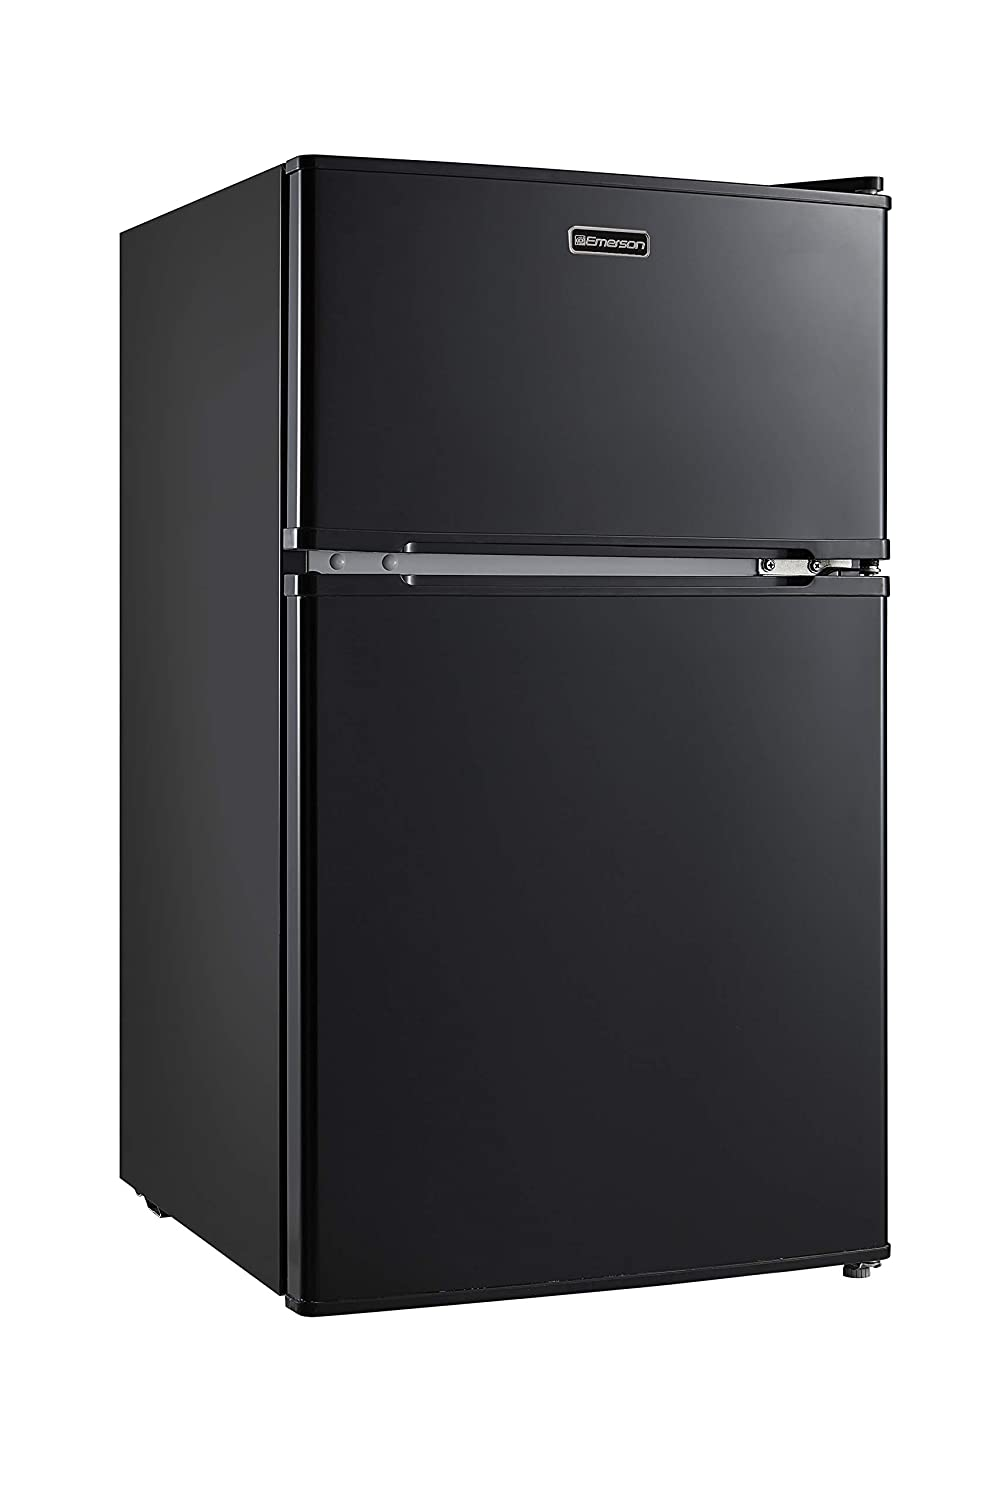 Emerson CR510BE 3.1 Cubic Foot Compact Double Door Refrigerator, Black